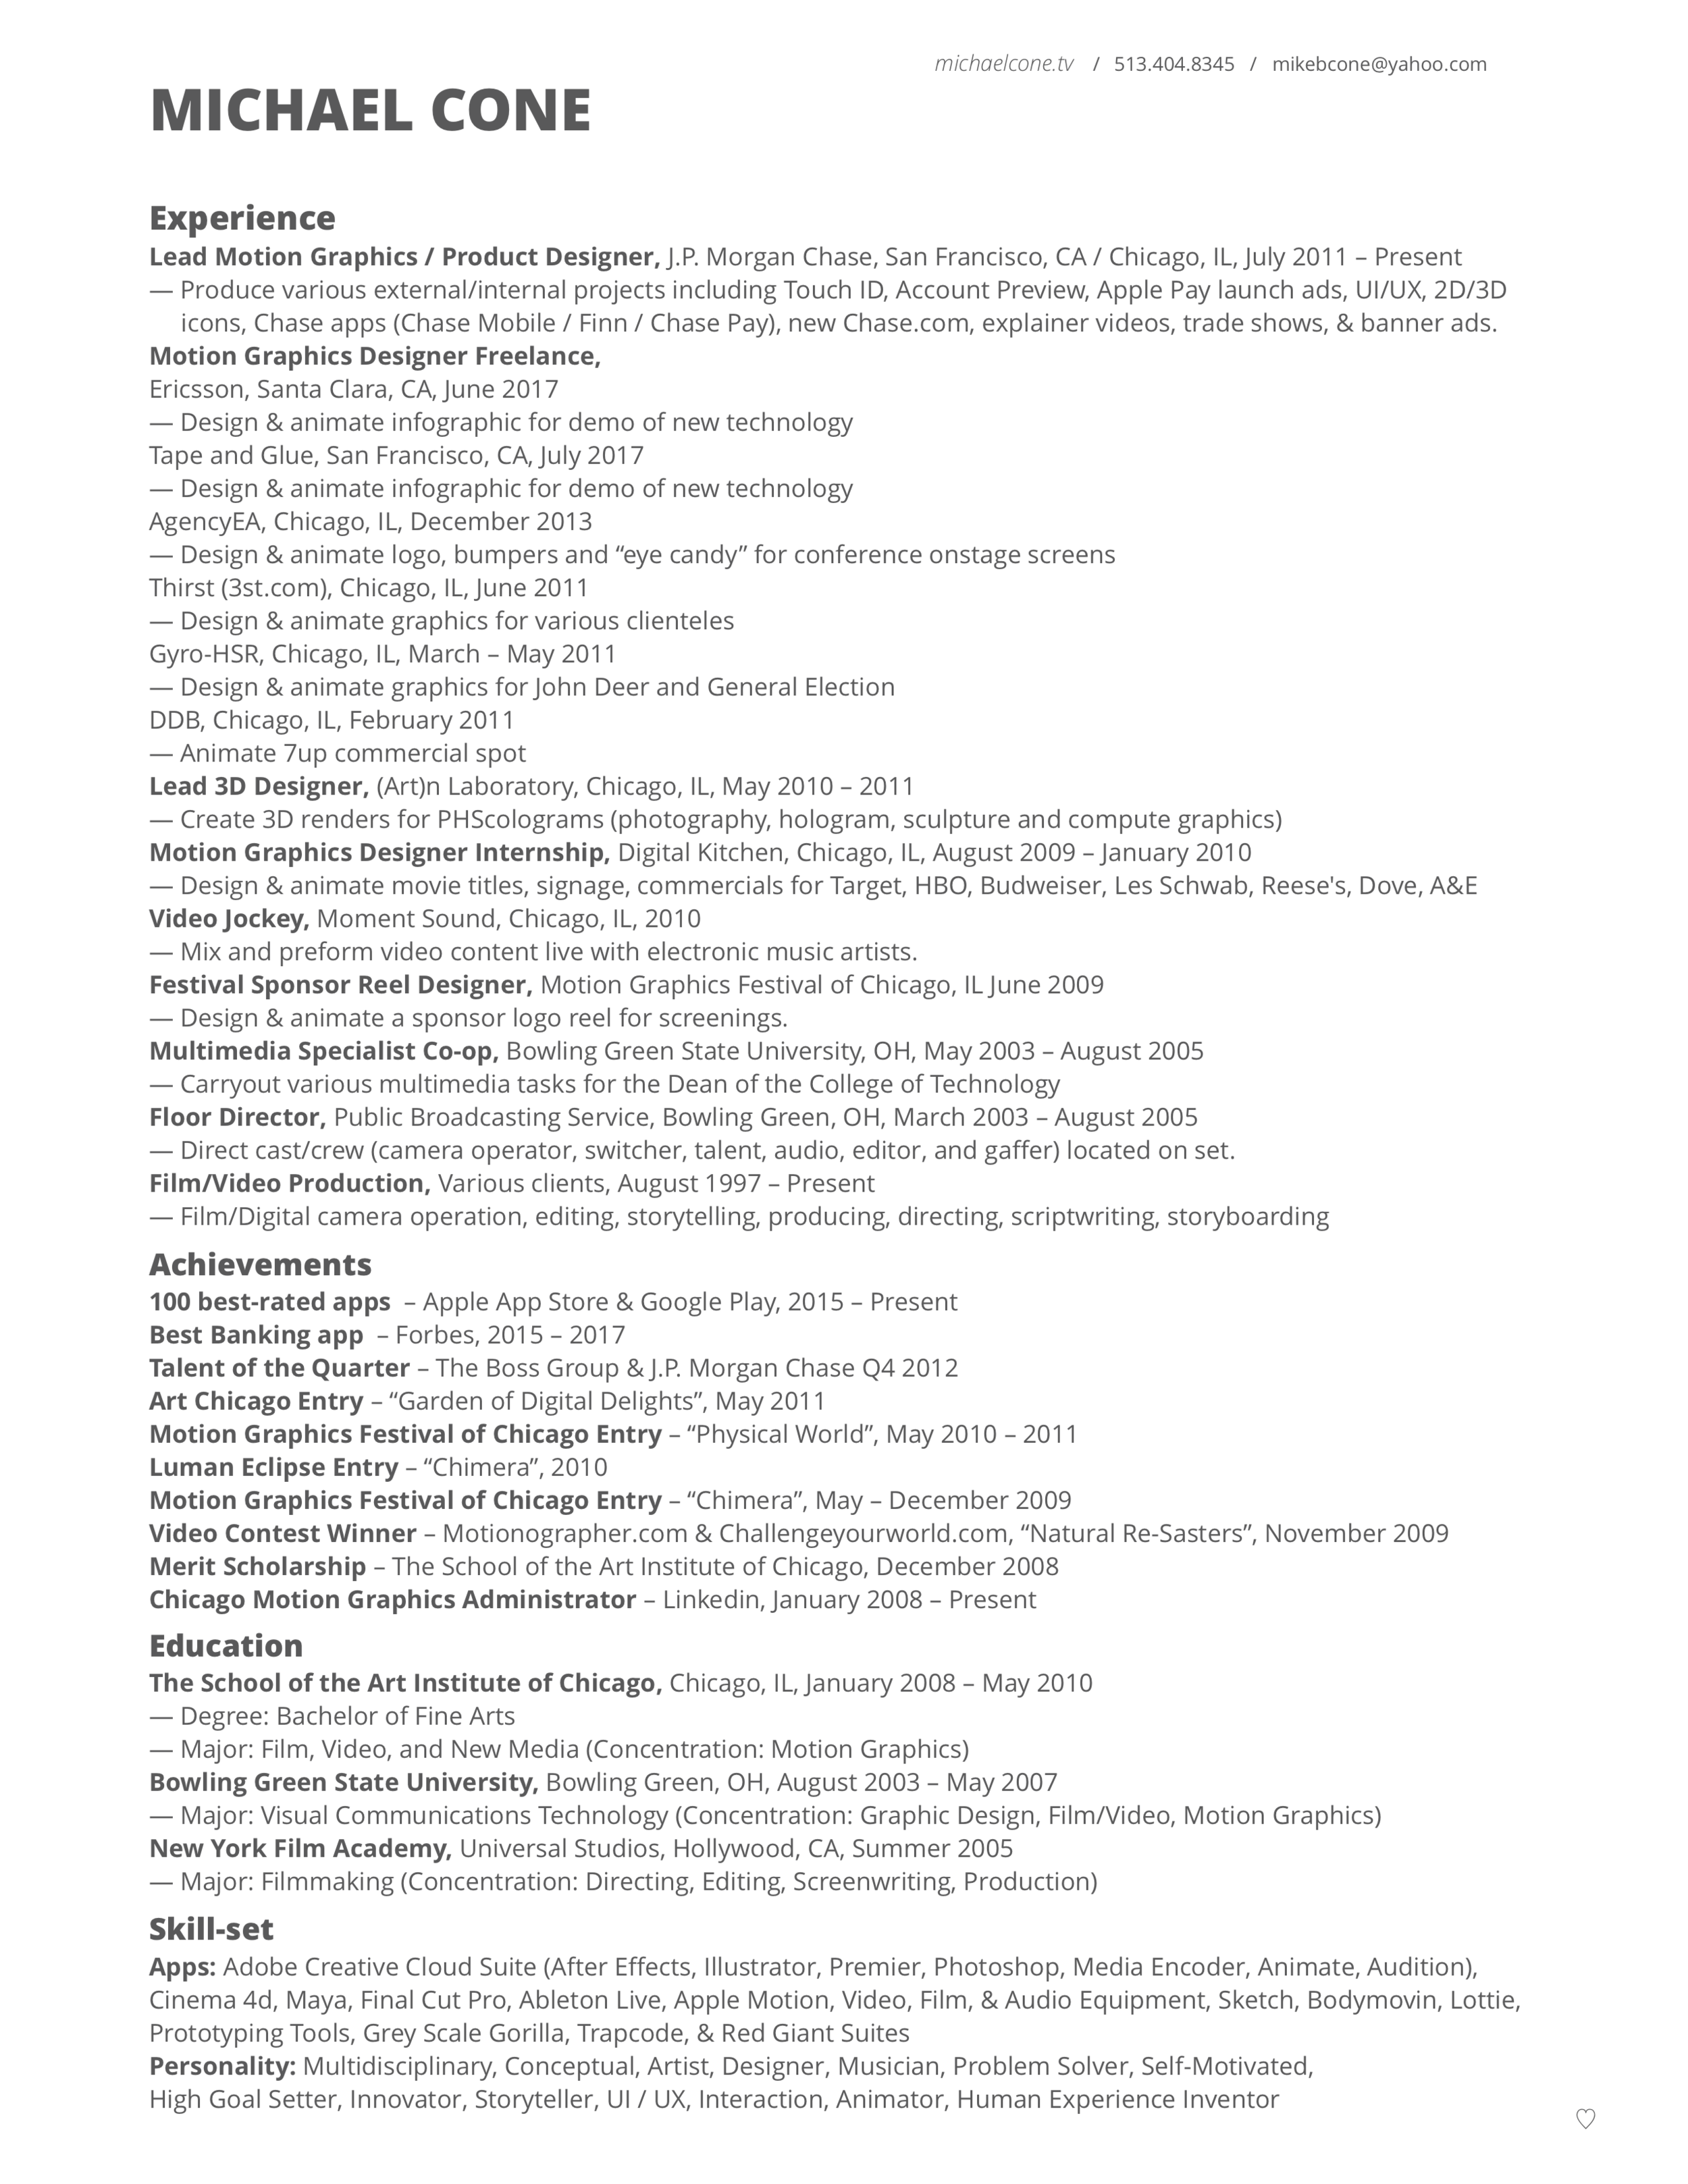 MichaelCone_Resume_2018_Final_2.png